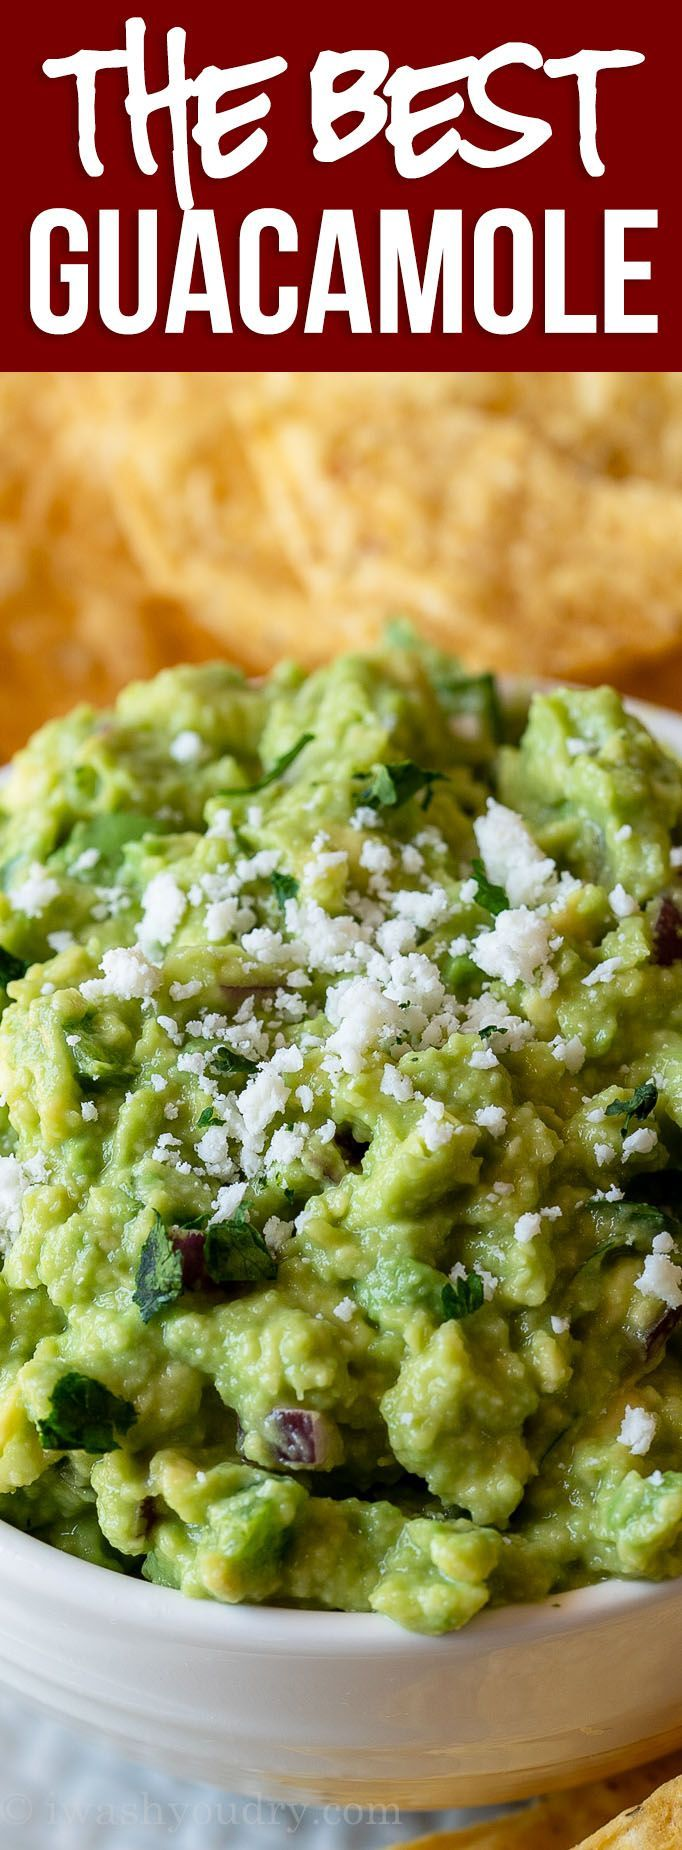 The BEST Classic Guacamole Recipe